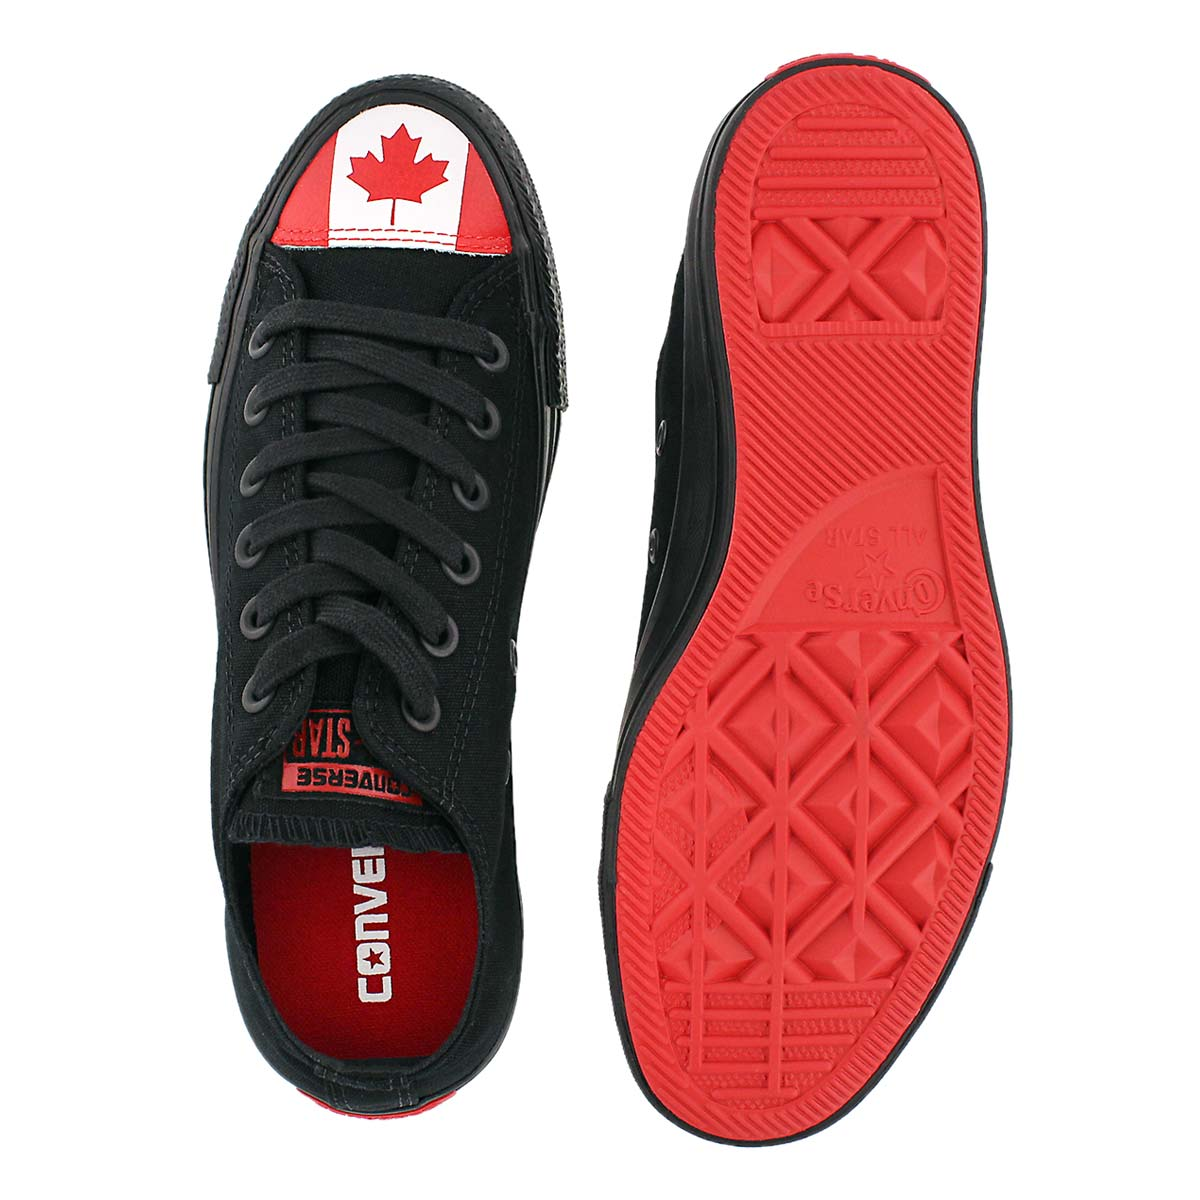 Lds CT All Star Canada Flag blk sneaker